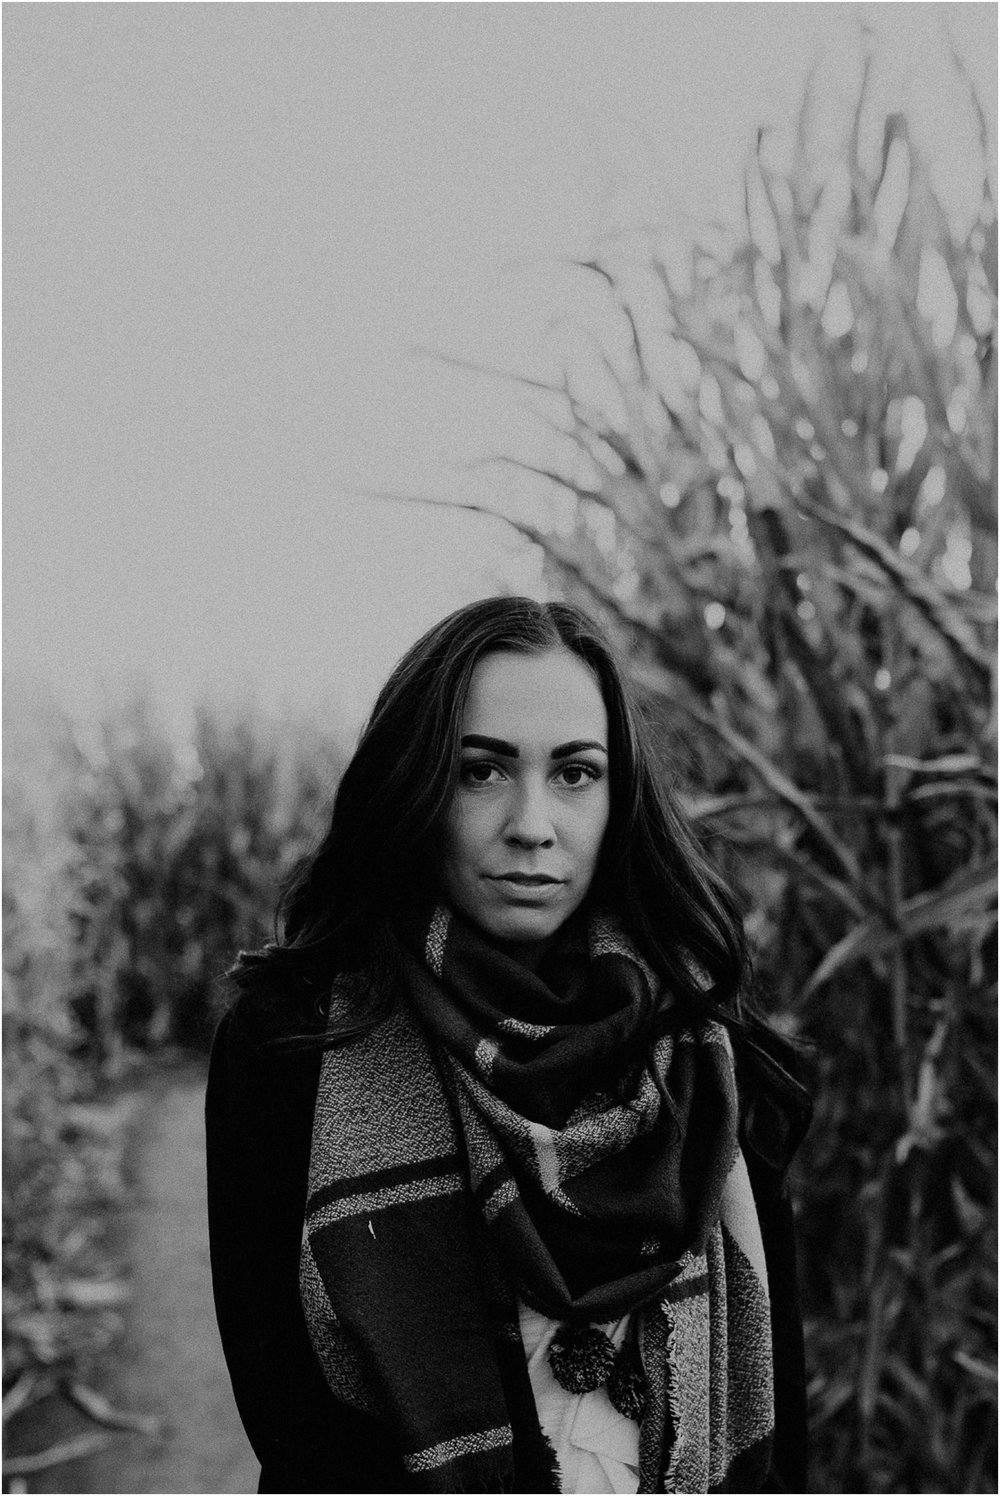 Boise Senior Boudoir Wedding Photographer Makayla Madden Photography Idaho Farmstead Corn Maze Fall Portrait Outfit Ideas Inspiration Plaid Scarf Pumpkin Patch Black and White